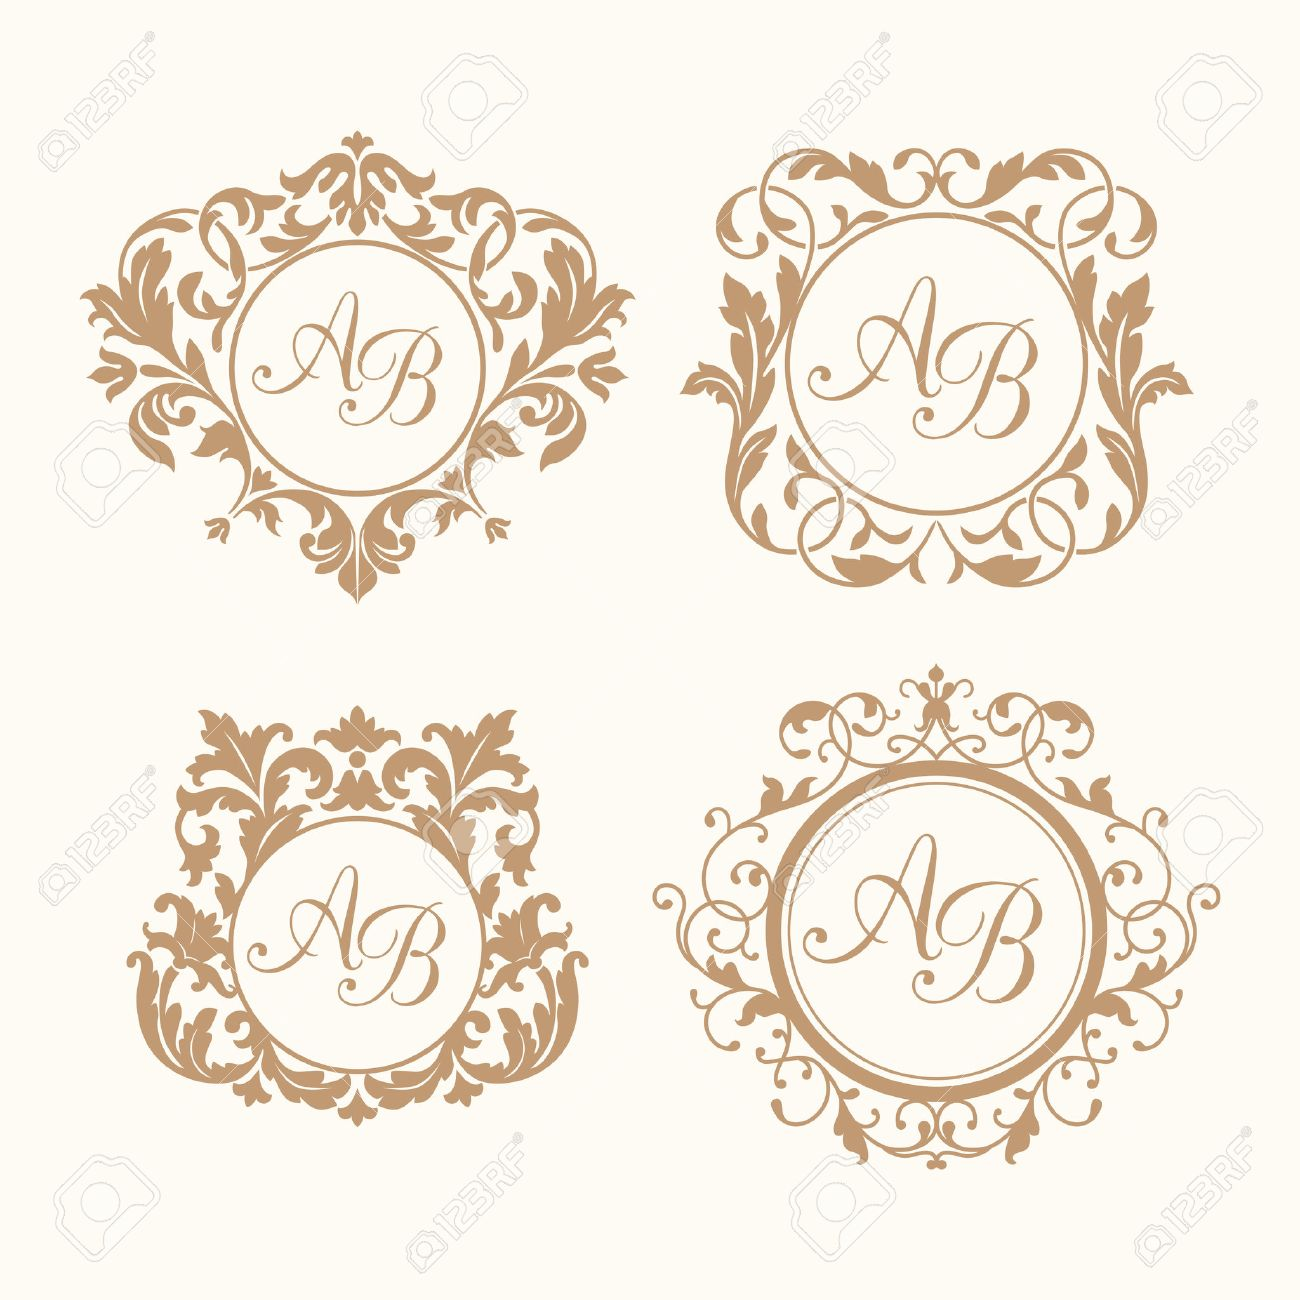 Set Of Elegant Floral Monogram Design Templates For One Or Two